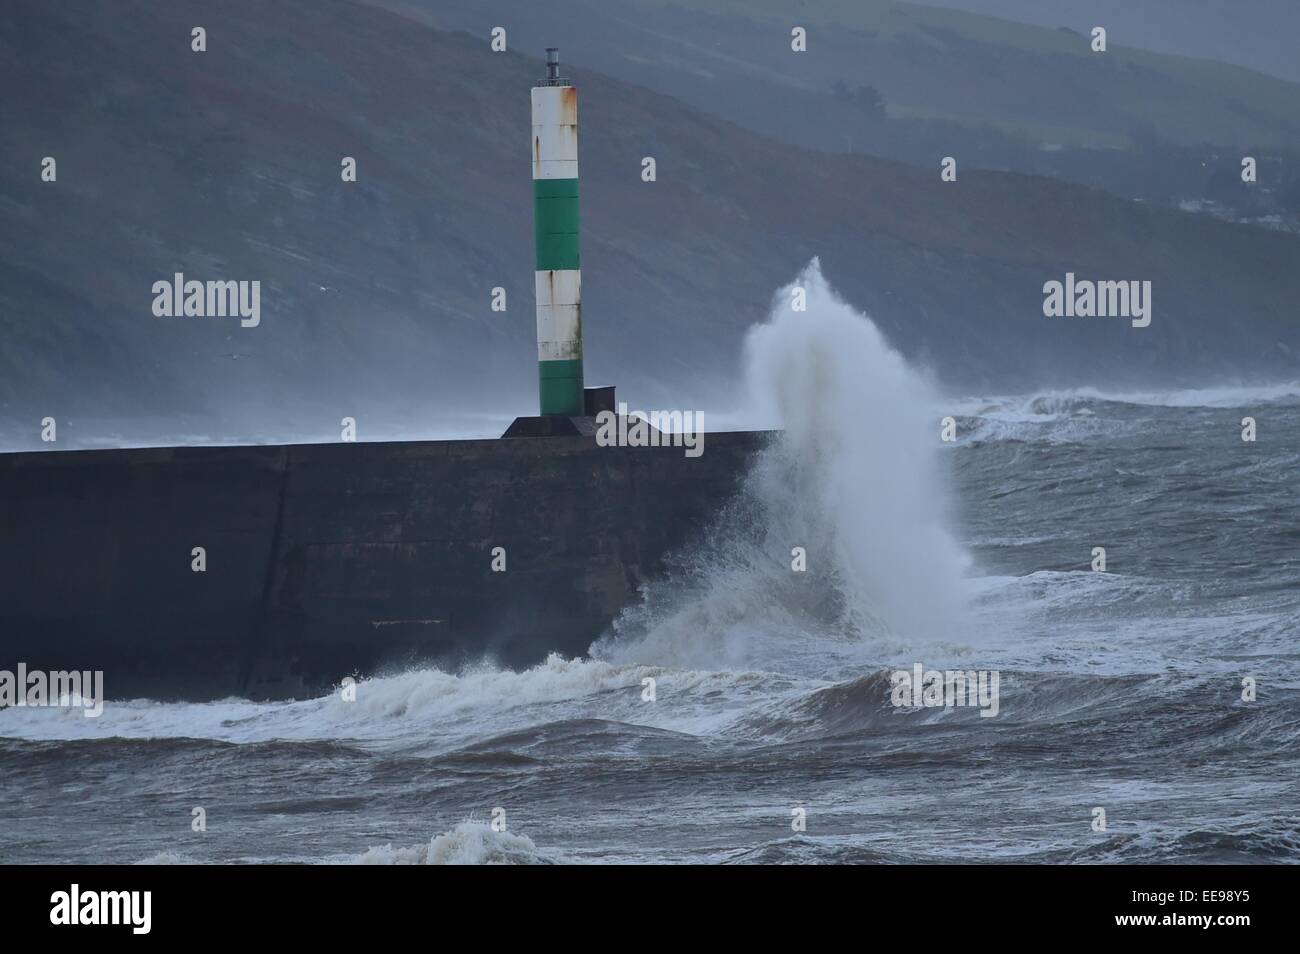 Aberystwyth, Wales, UK. 15th January, 2015. UK weather. Waves crash over the harbour wall and lighthouse beacon - Stock Image